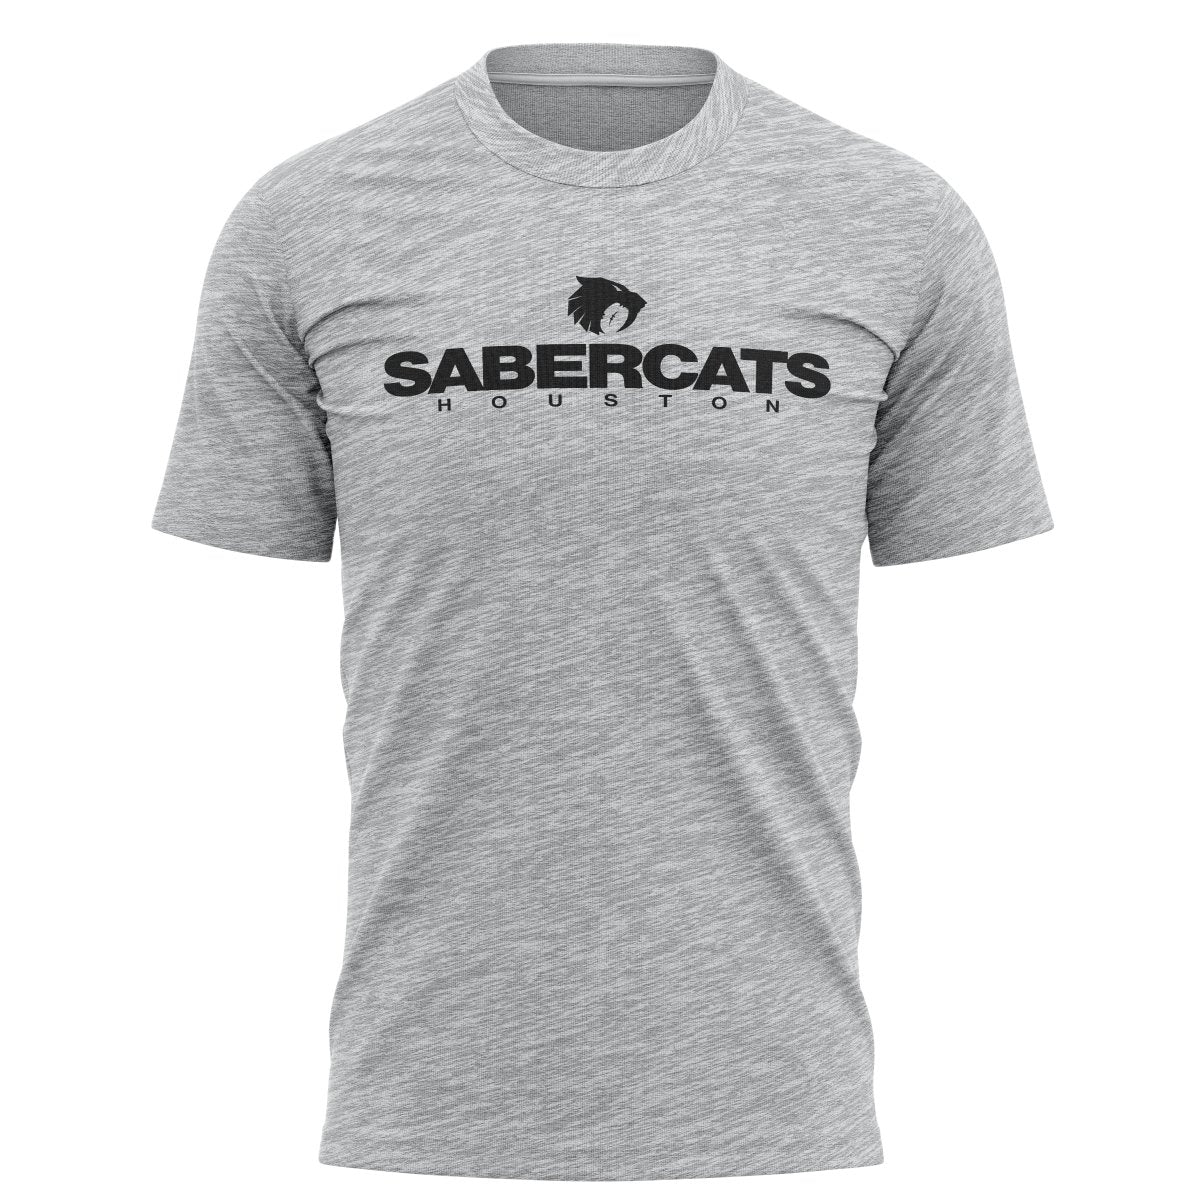 Houston Sabercats Graphic Tee - Gray - www.therugbyshop.com